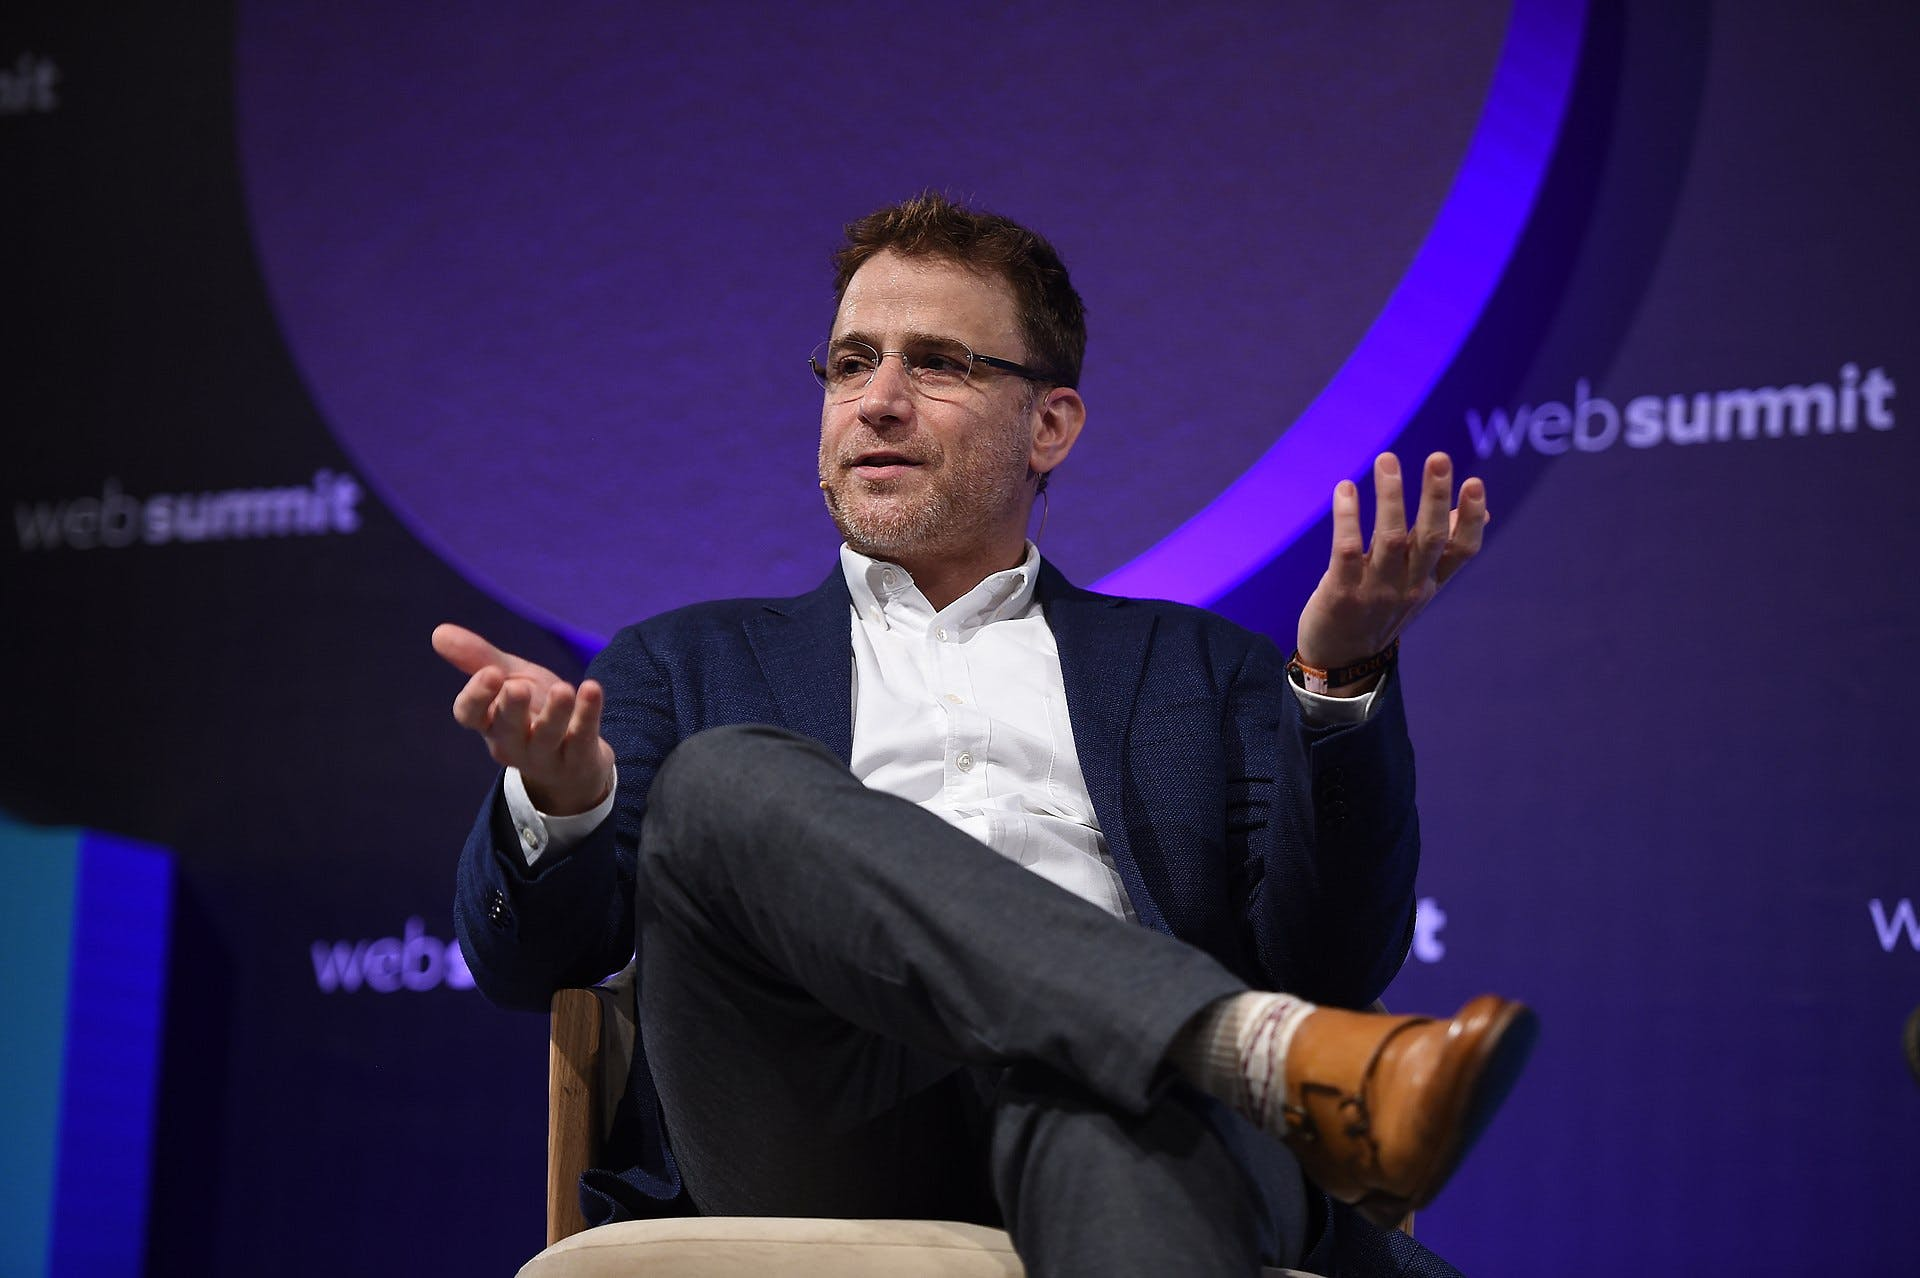 STEWART BUTTERFIELD: CANADIAN ENTREPRENEUR, KNOWN AS THE CO-FOUNDER OF FLICKR AND SLACK